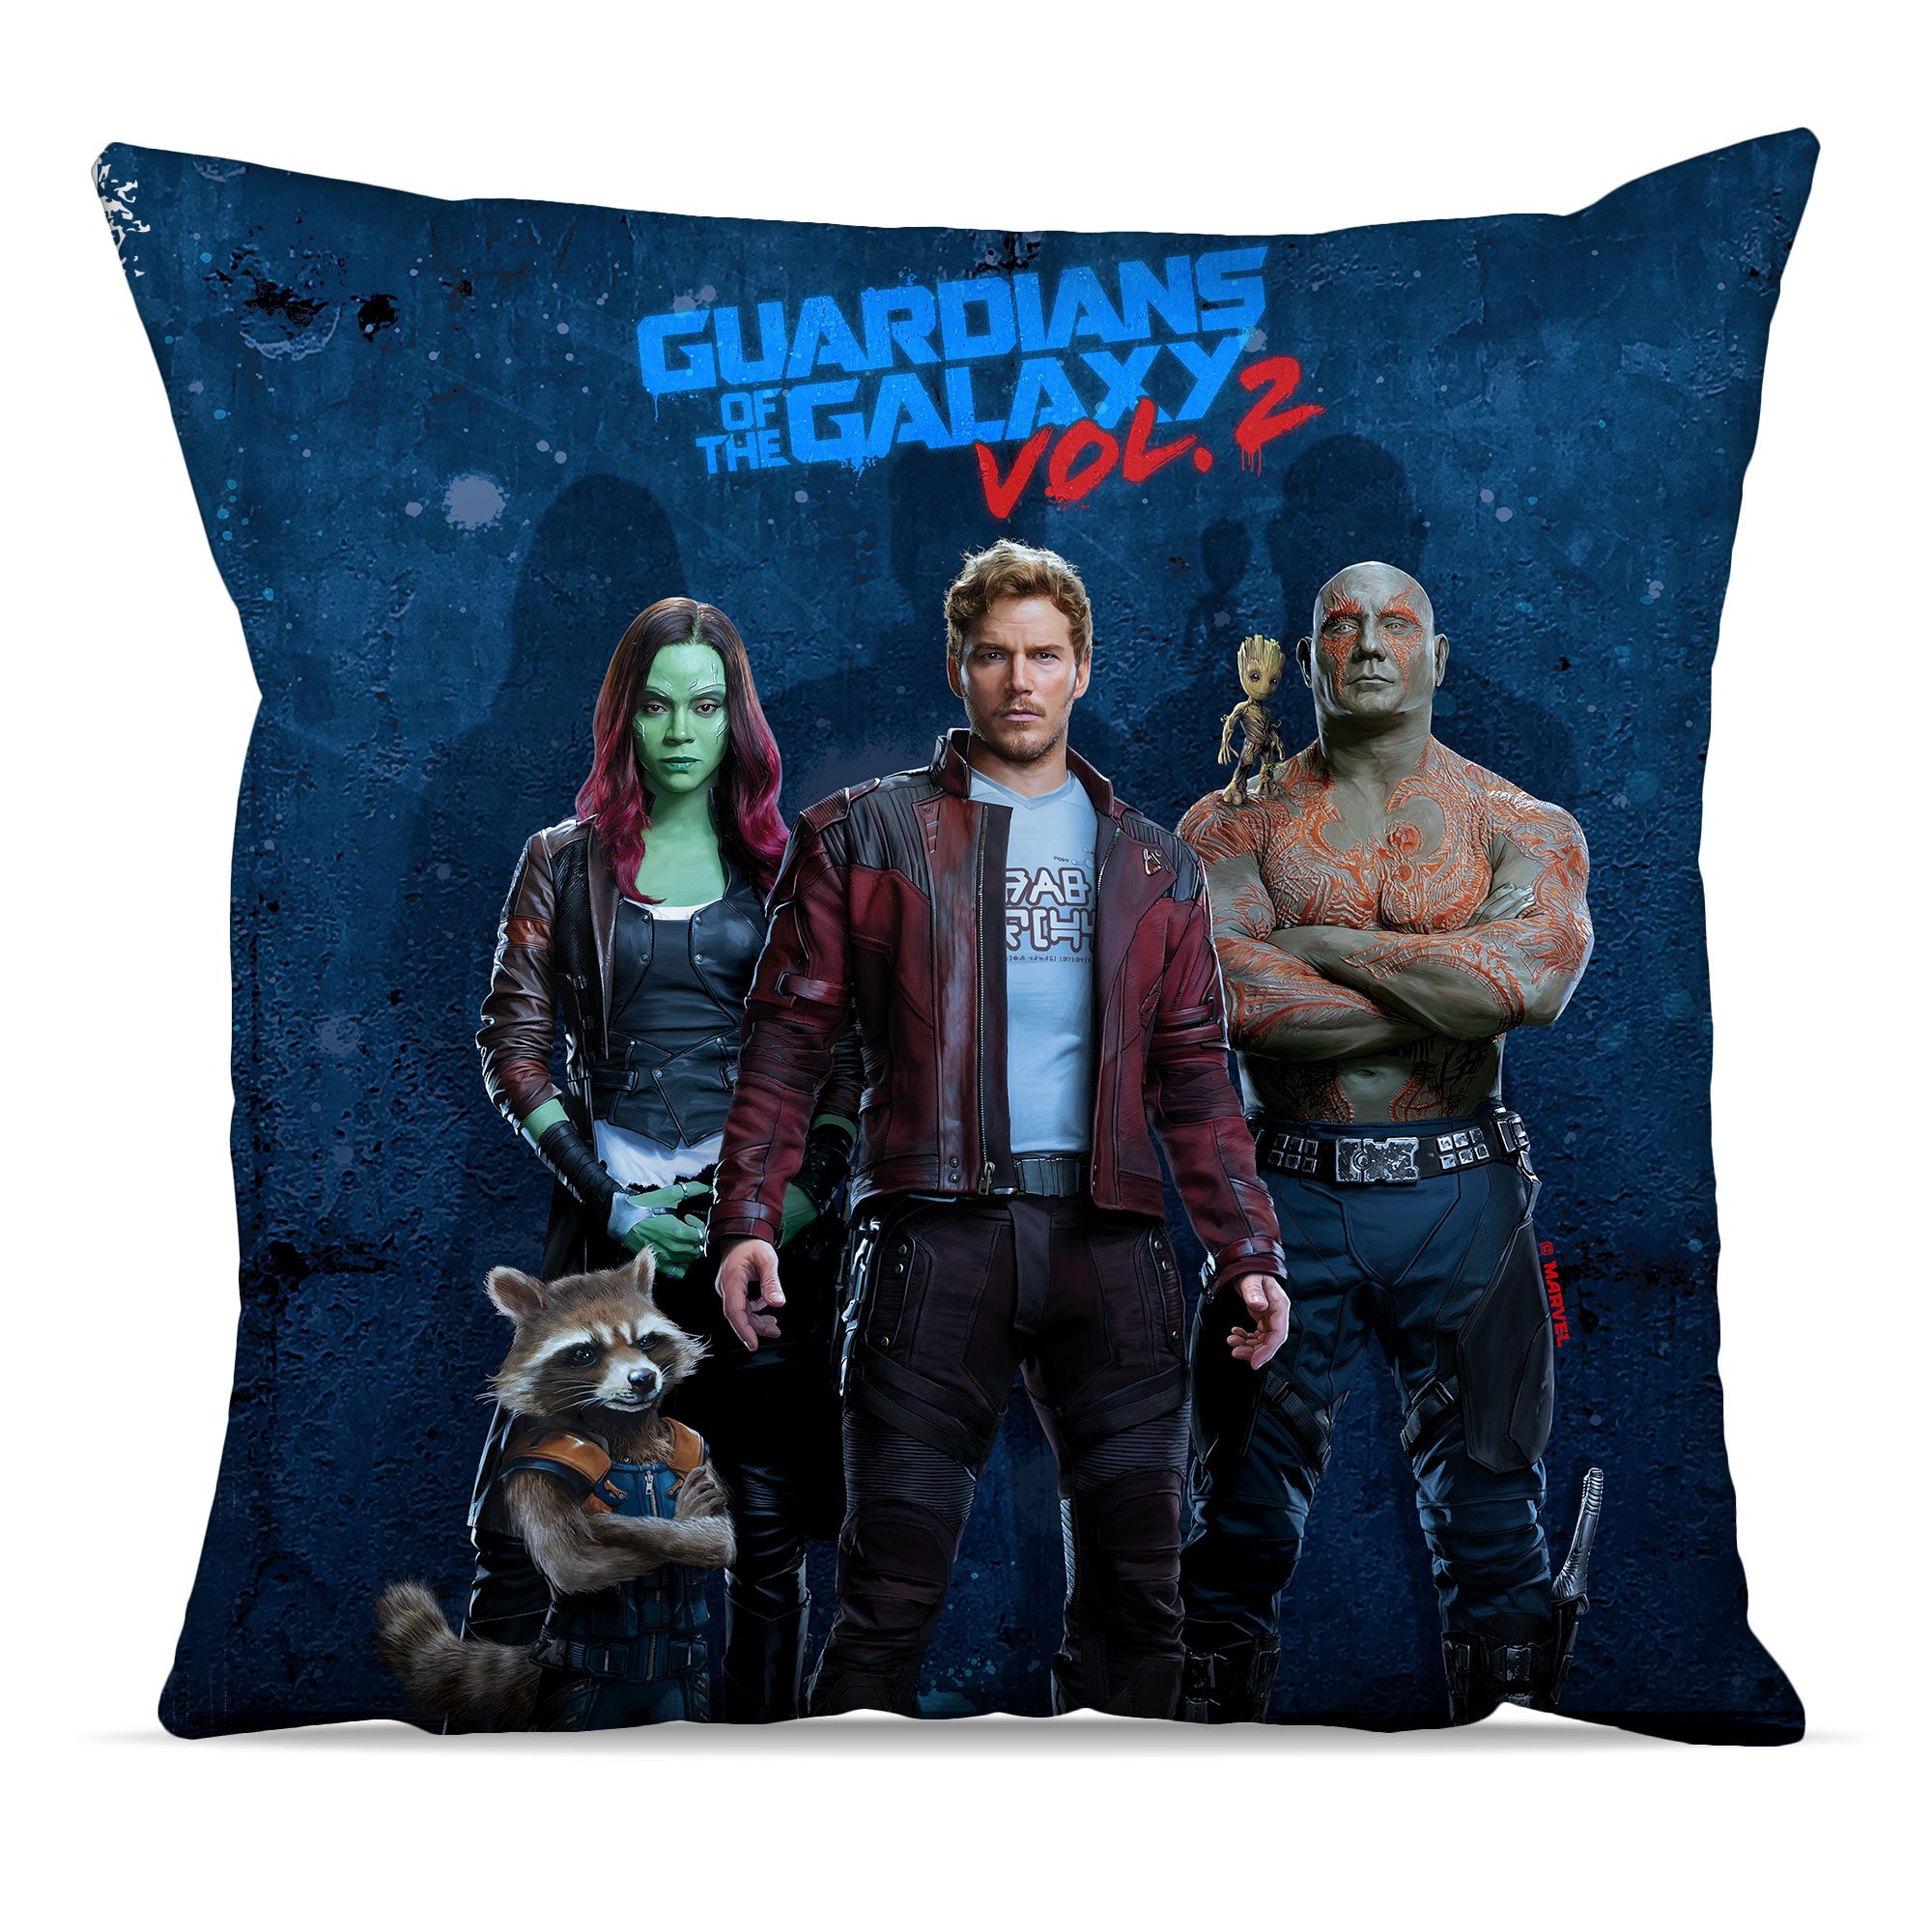 Marvel Guardians of the Galaxy Grunge Cushion